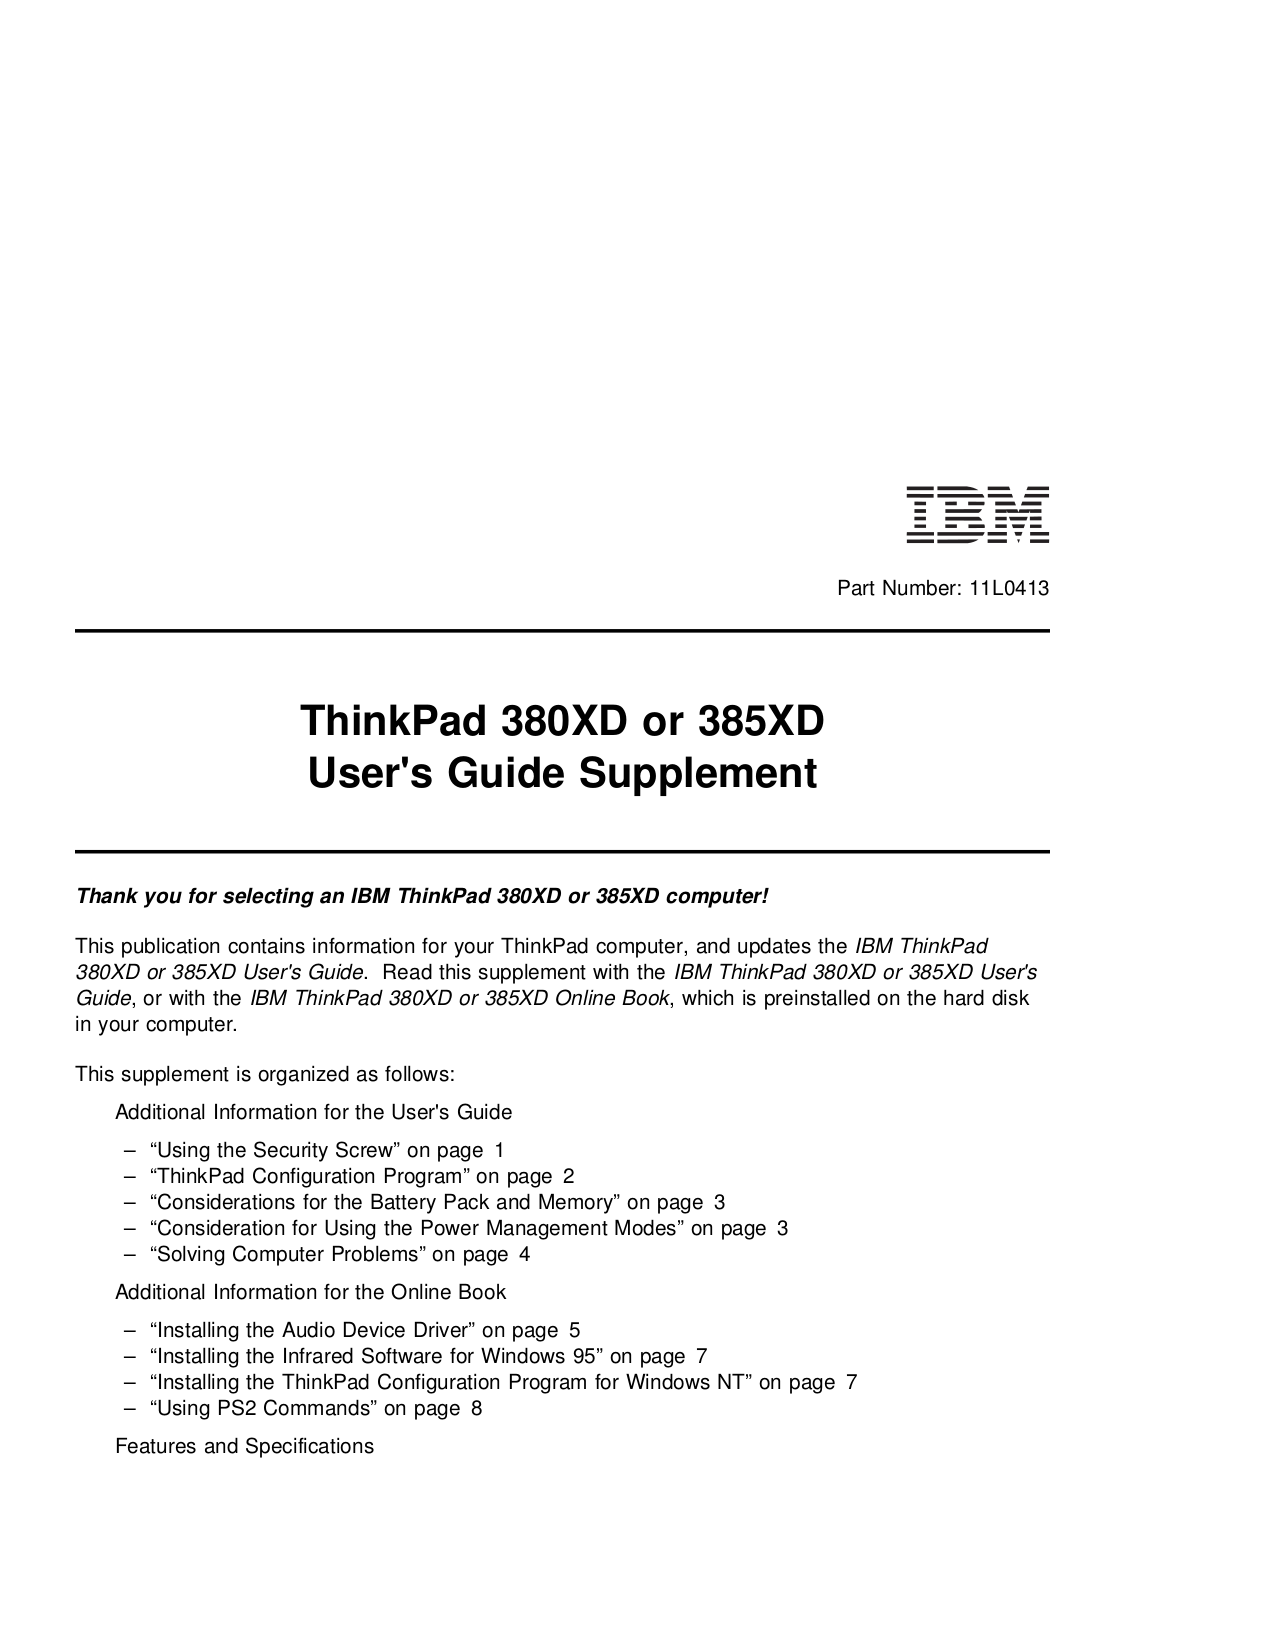 pdf for IBM Laptop ThinkPad 385XD manual